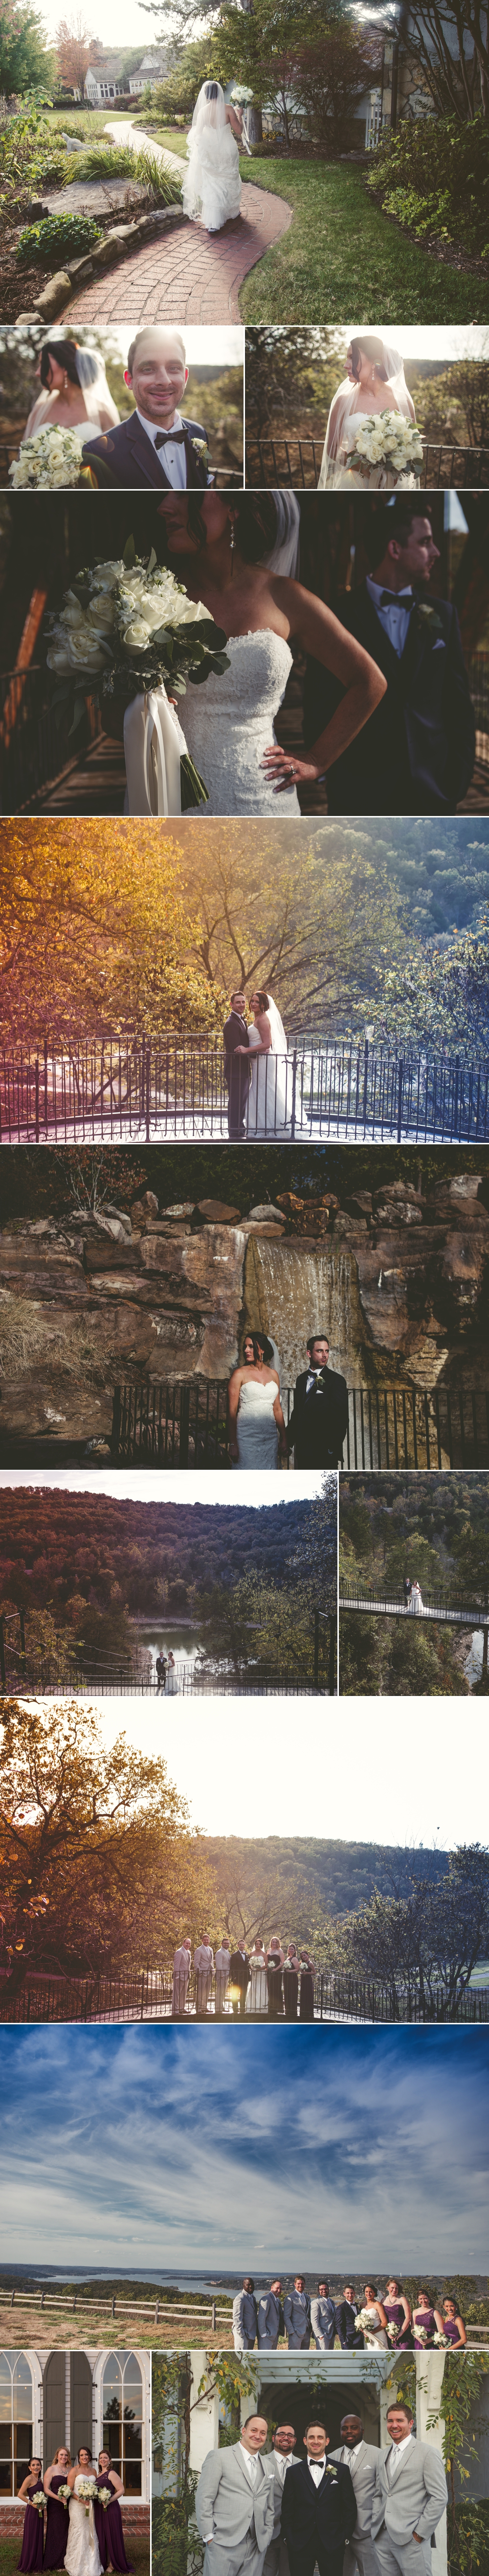 jason_domingues_photography_-best_kansas_city_photographer_big_cedar_lodge_wedding_ozark_kc_missouri_0002